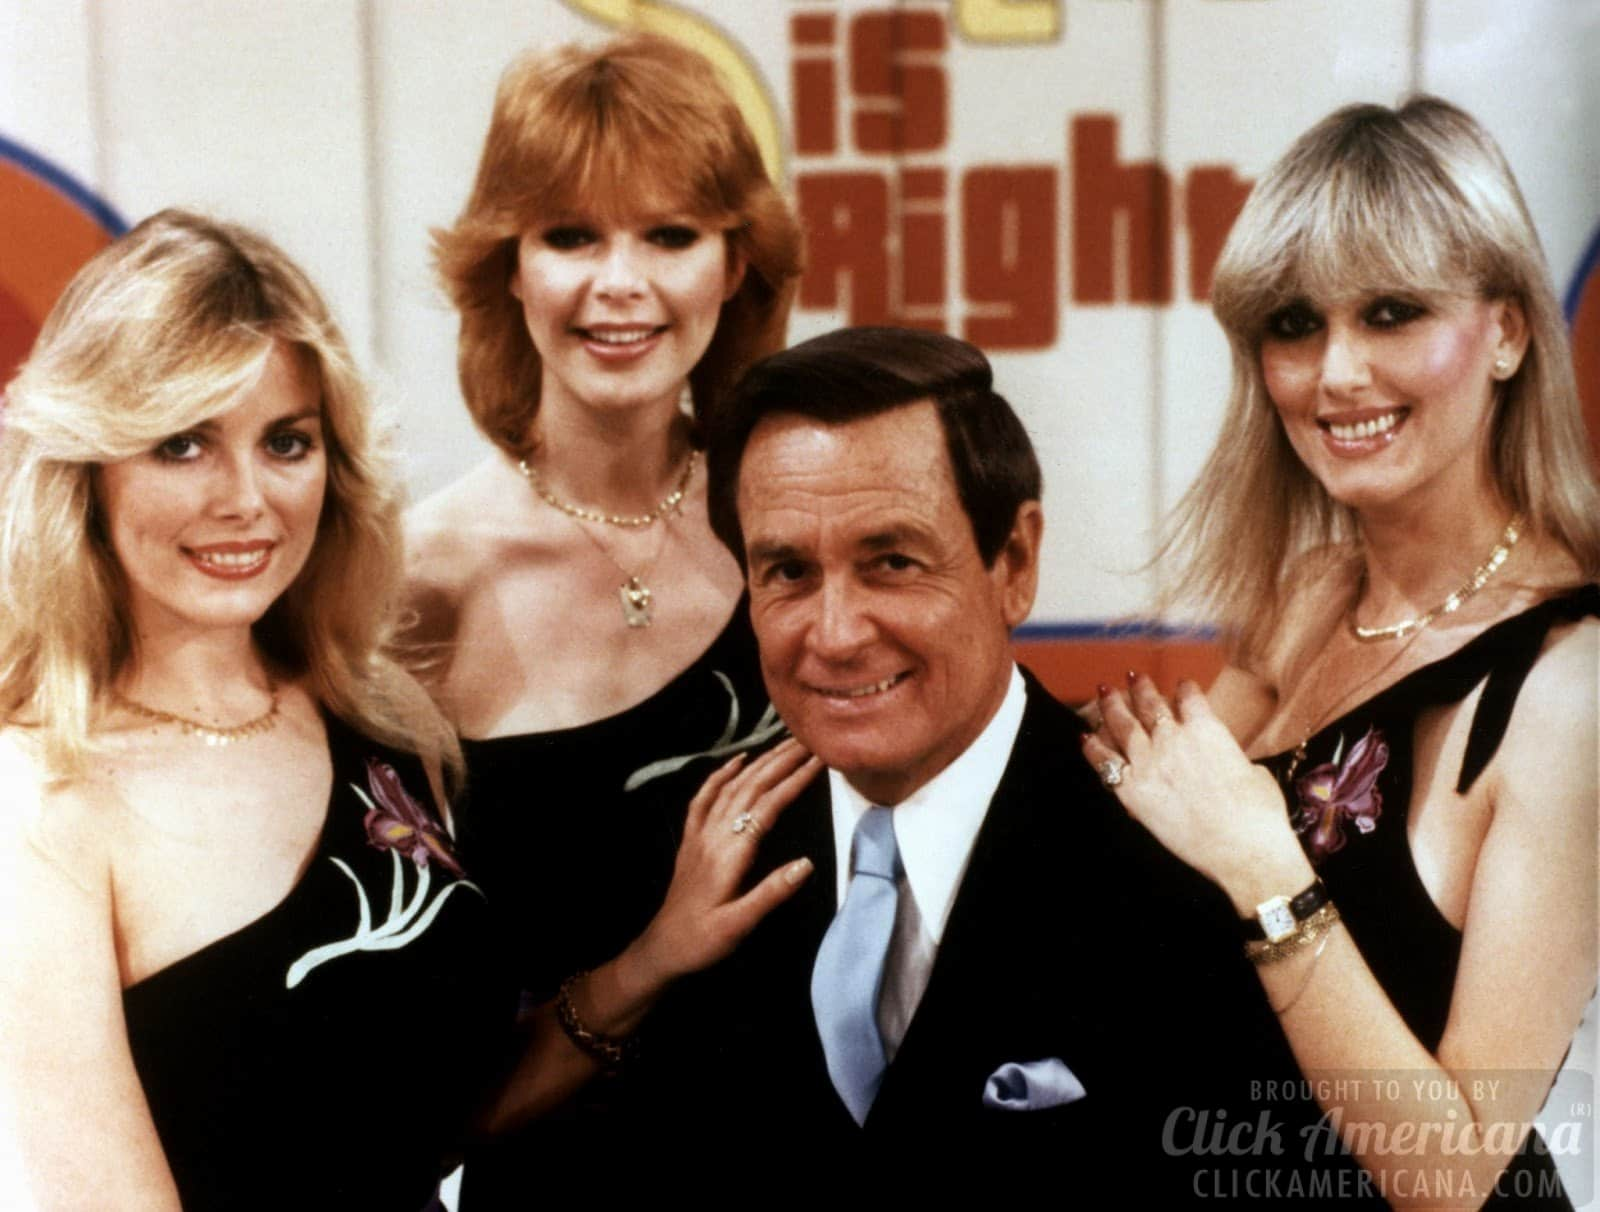 Bob Barker - The Price is Right game show